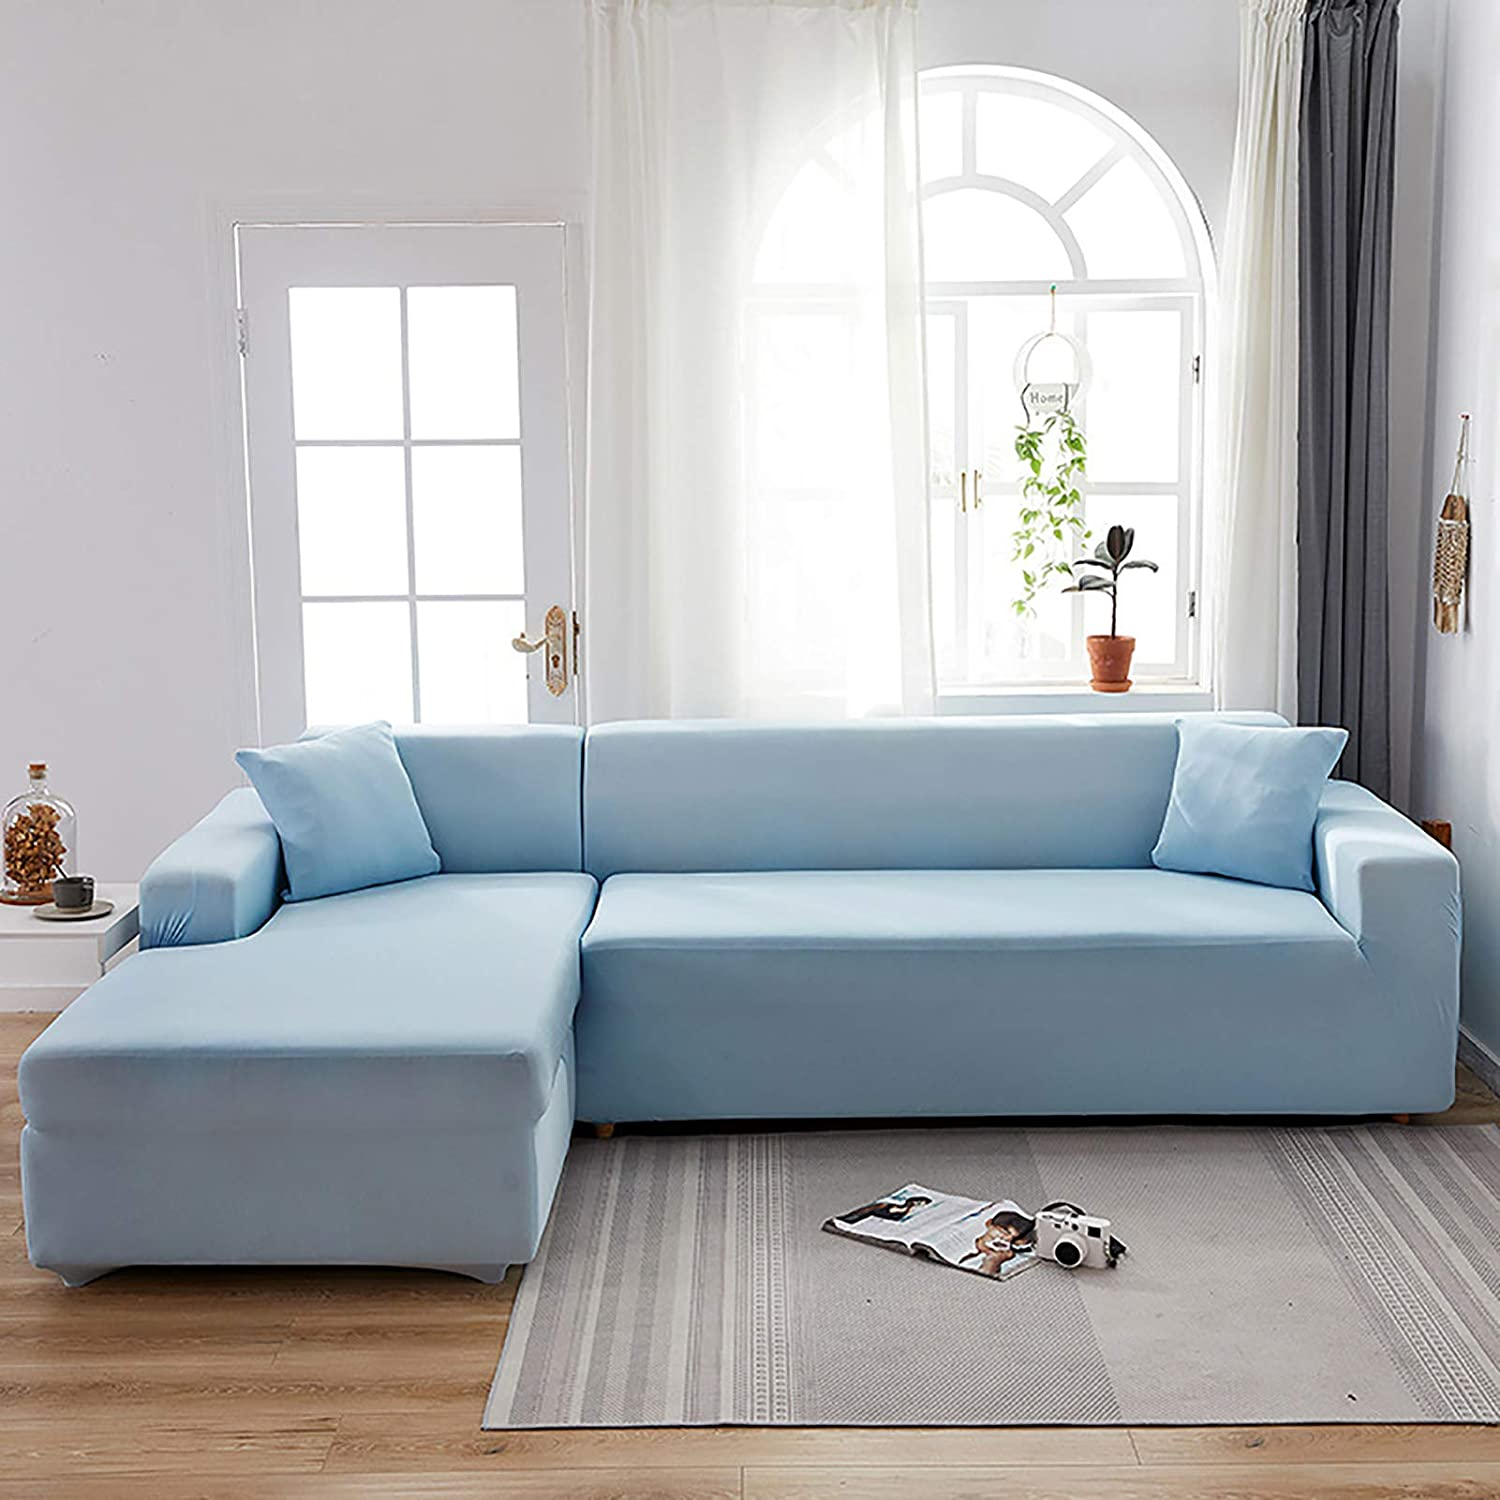 TIYKI Sofa Free shipping Same day shipping New Cover for Slipco Polyester Stretch Pets